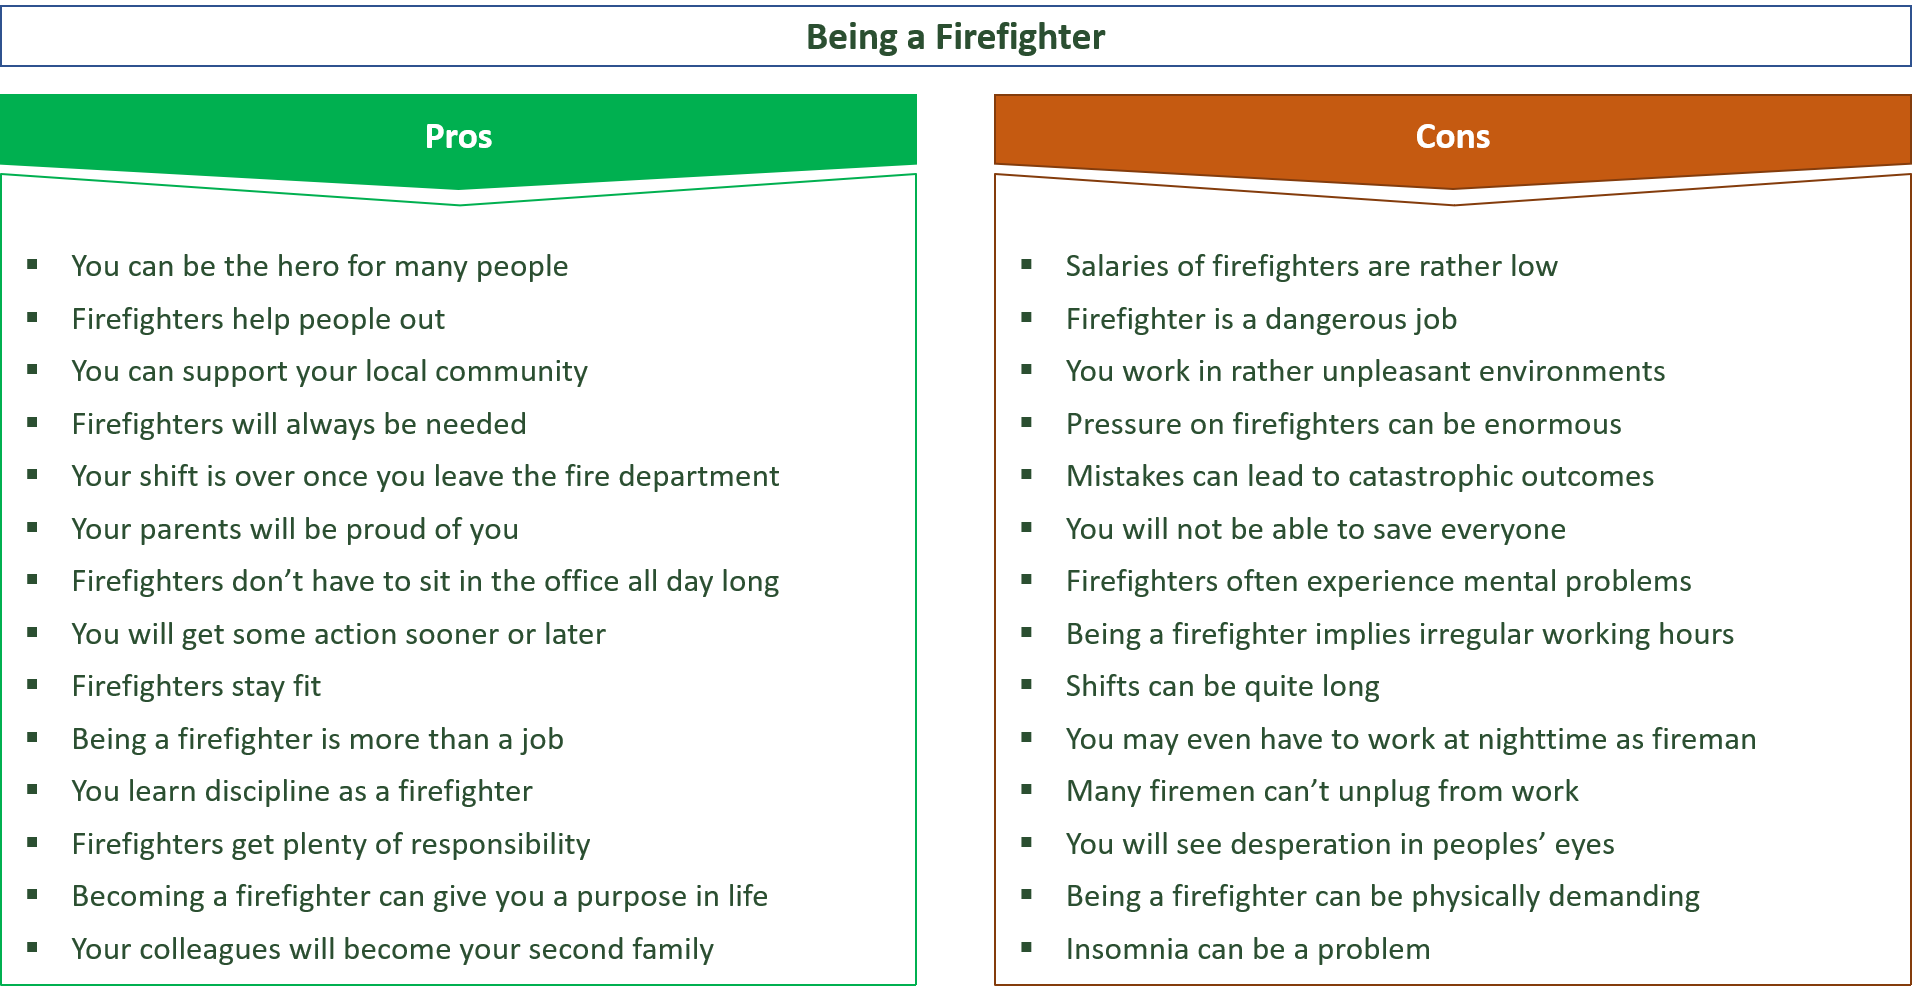 advantages and disadvantages of being a firefighter